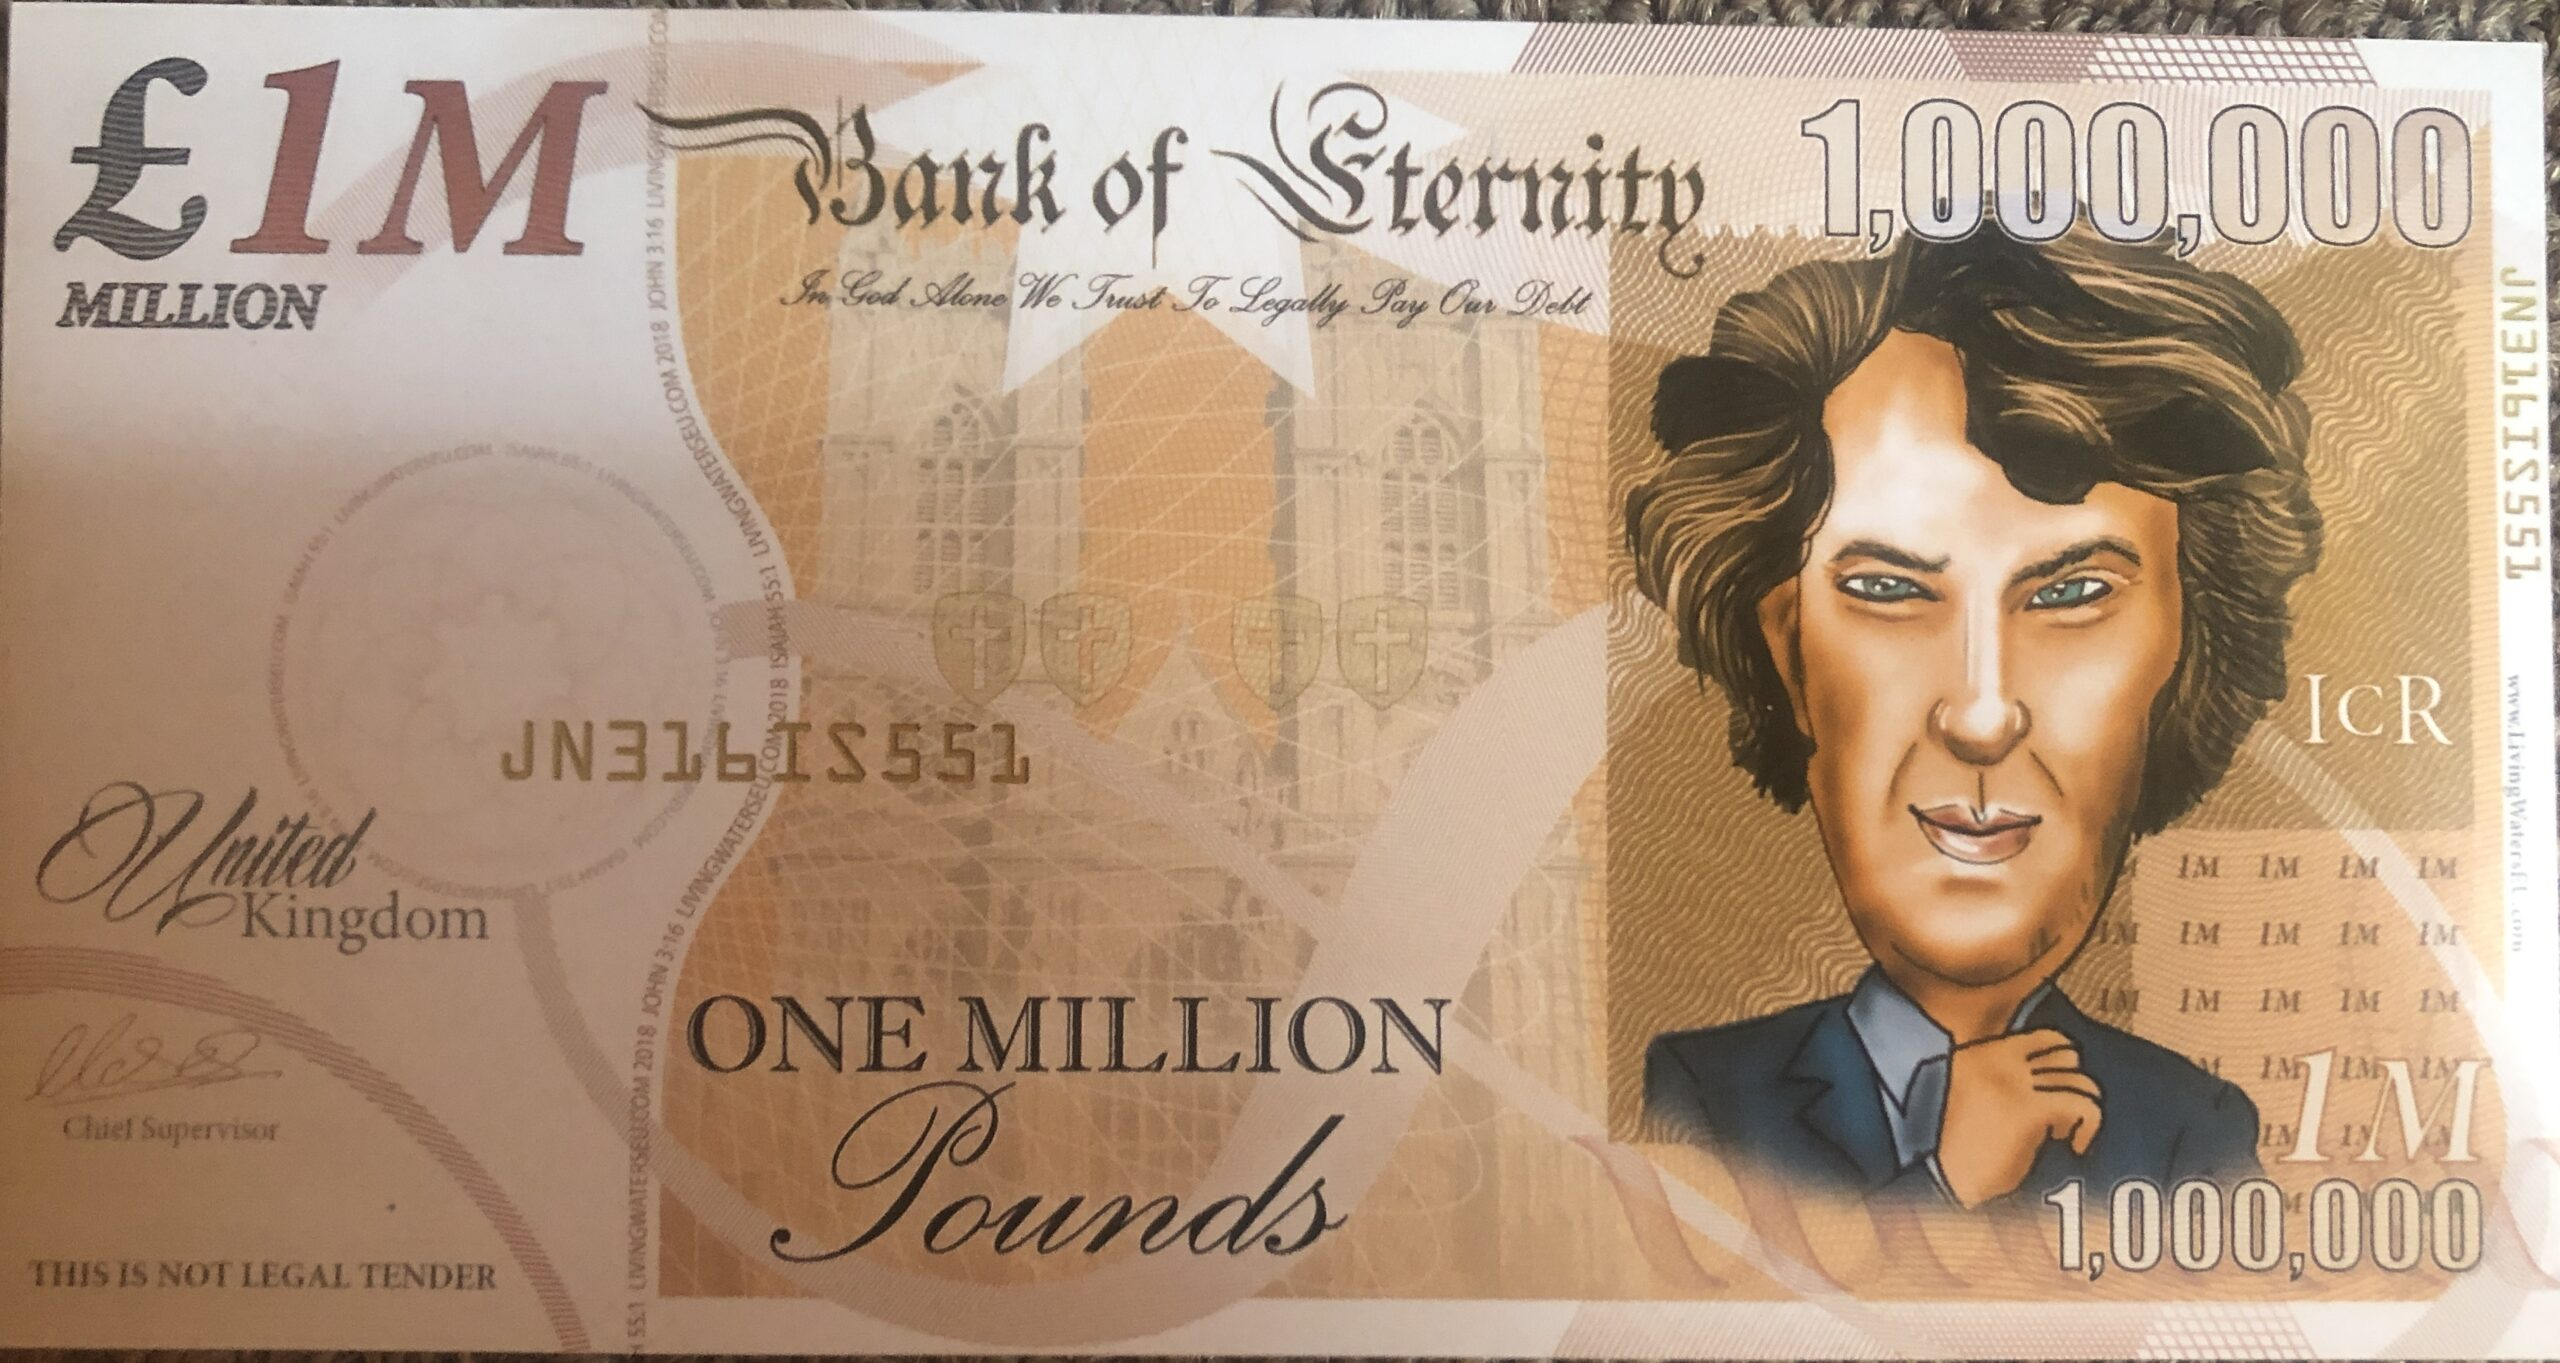 2019 Bank of Eternity £1M Notes Feature Cumberbatch